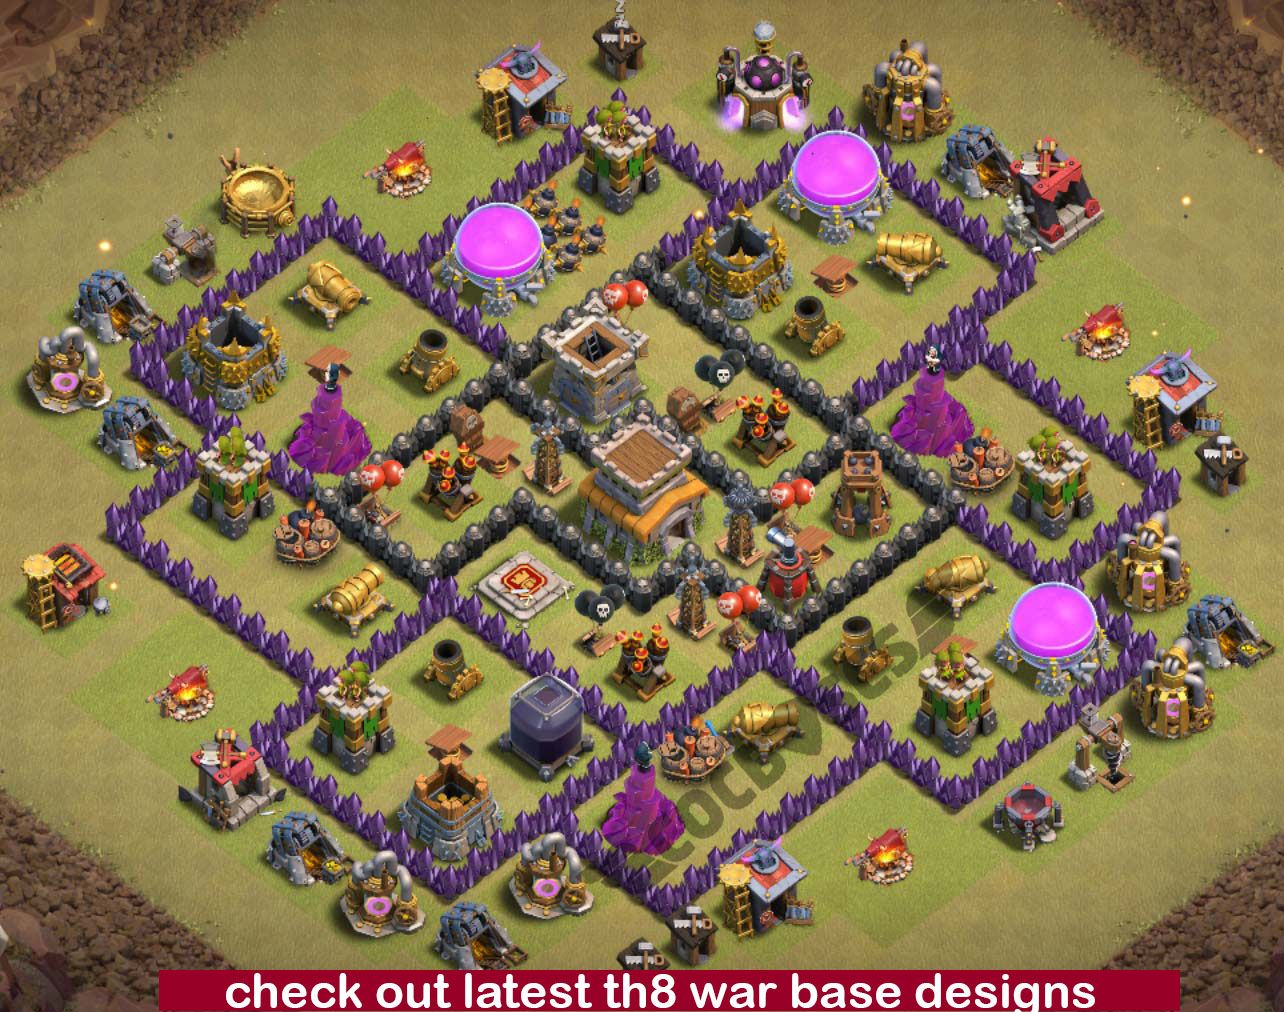 500 Th8 War Base Links Ideas War Base Clash Of Clans